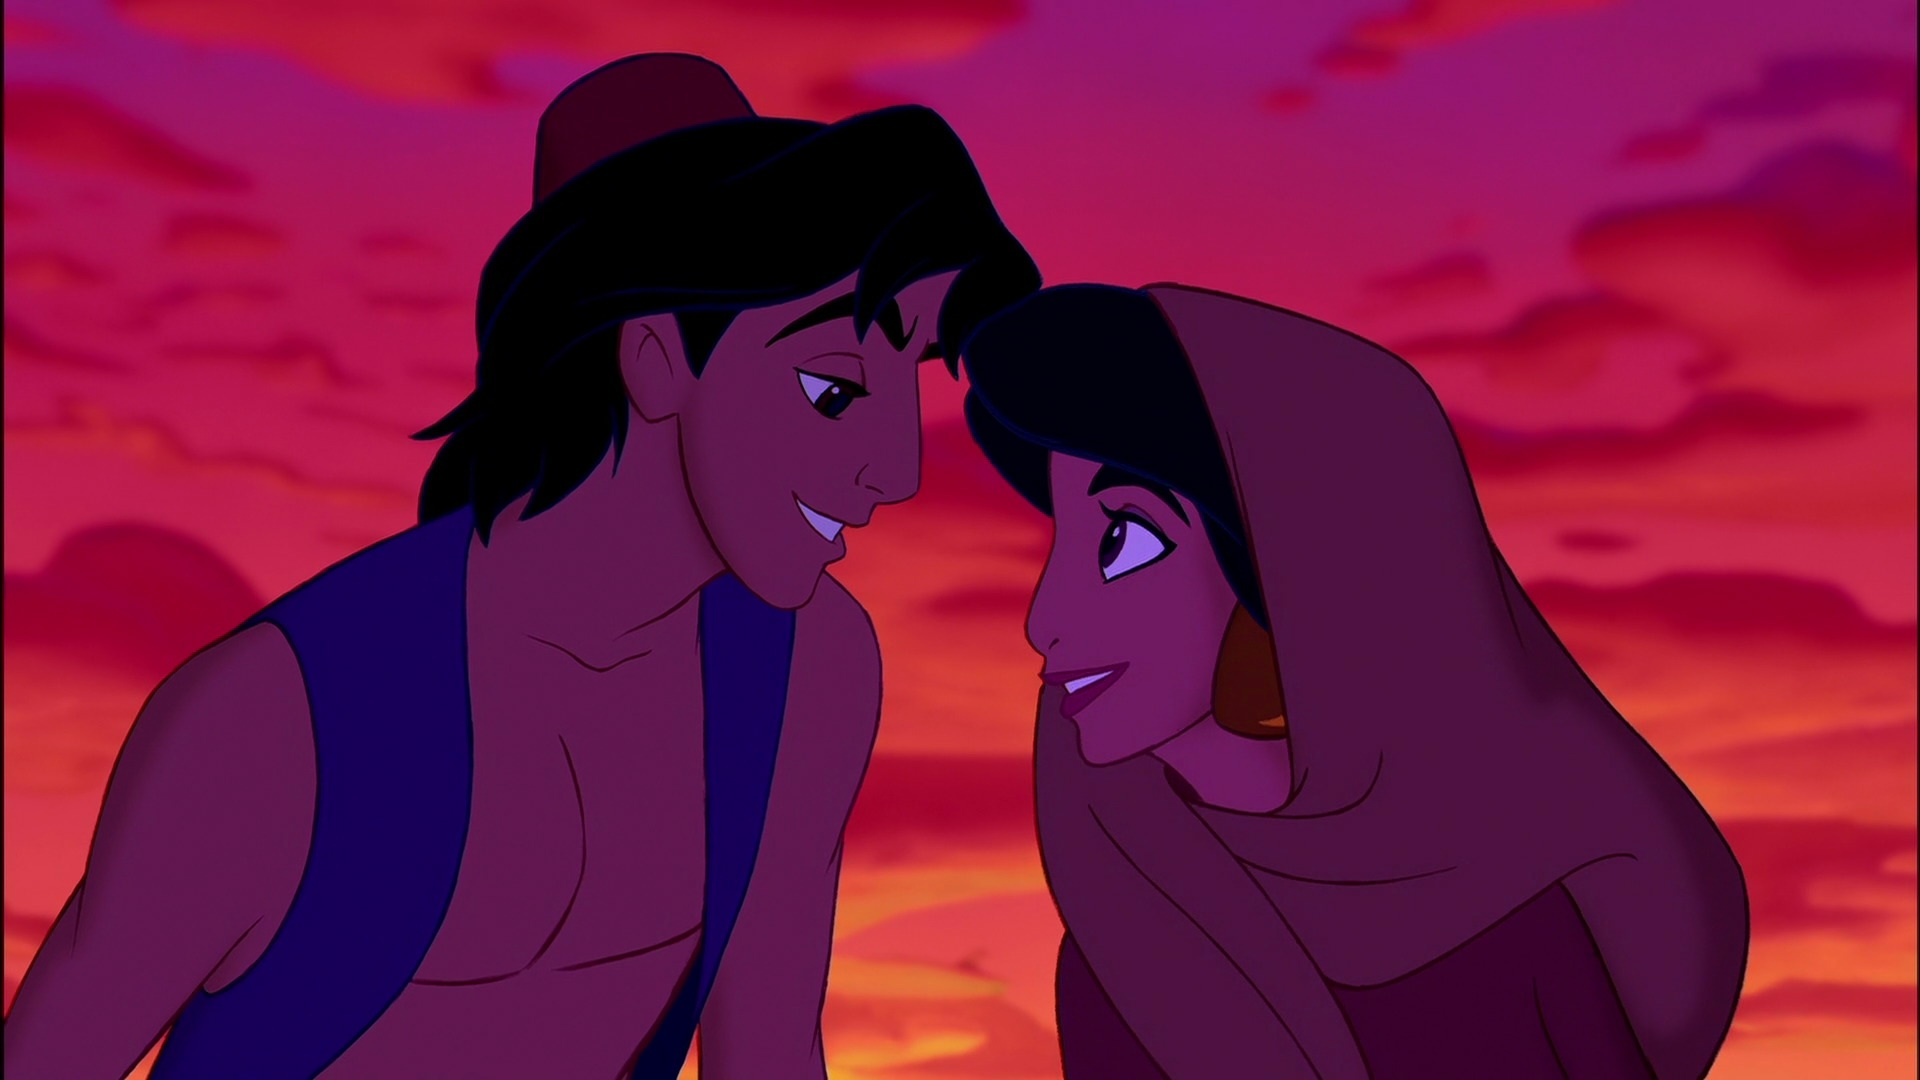 If you can't find your Aladdin lead, you're not looking hard